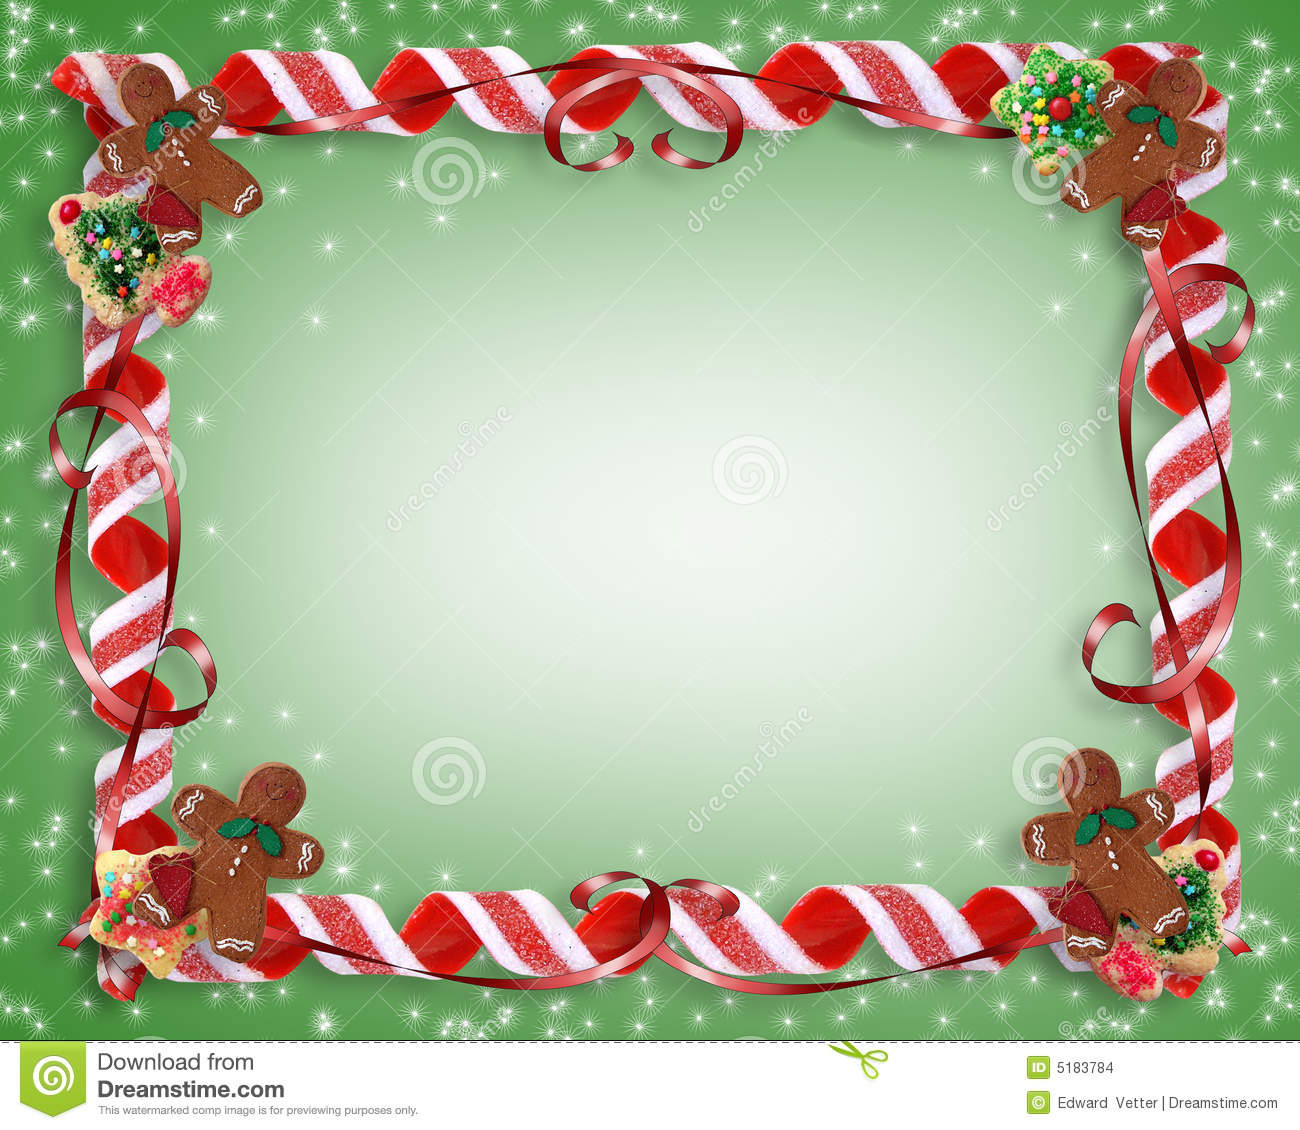 Christmas Cookies Borders  Christmas Cookies And Candy Frame Stock Illustration